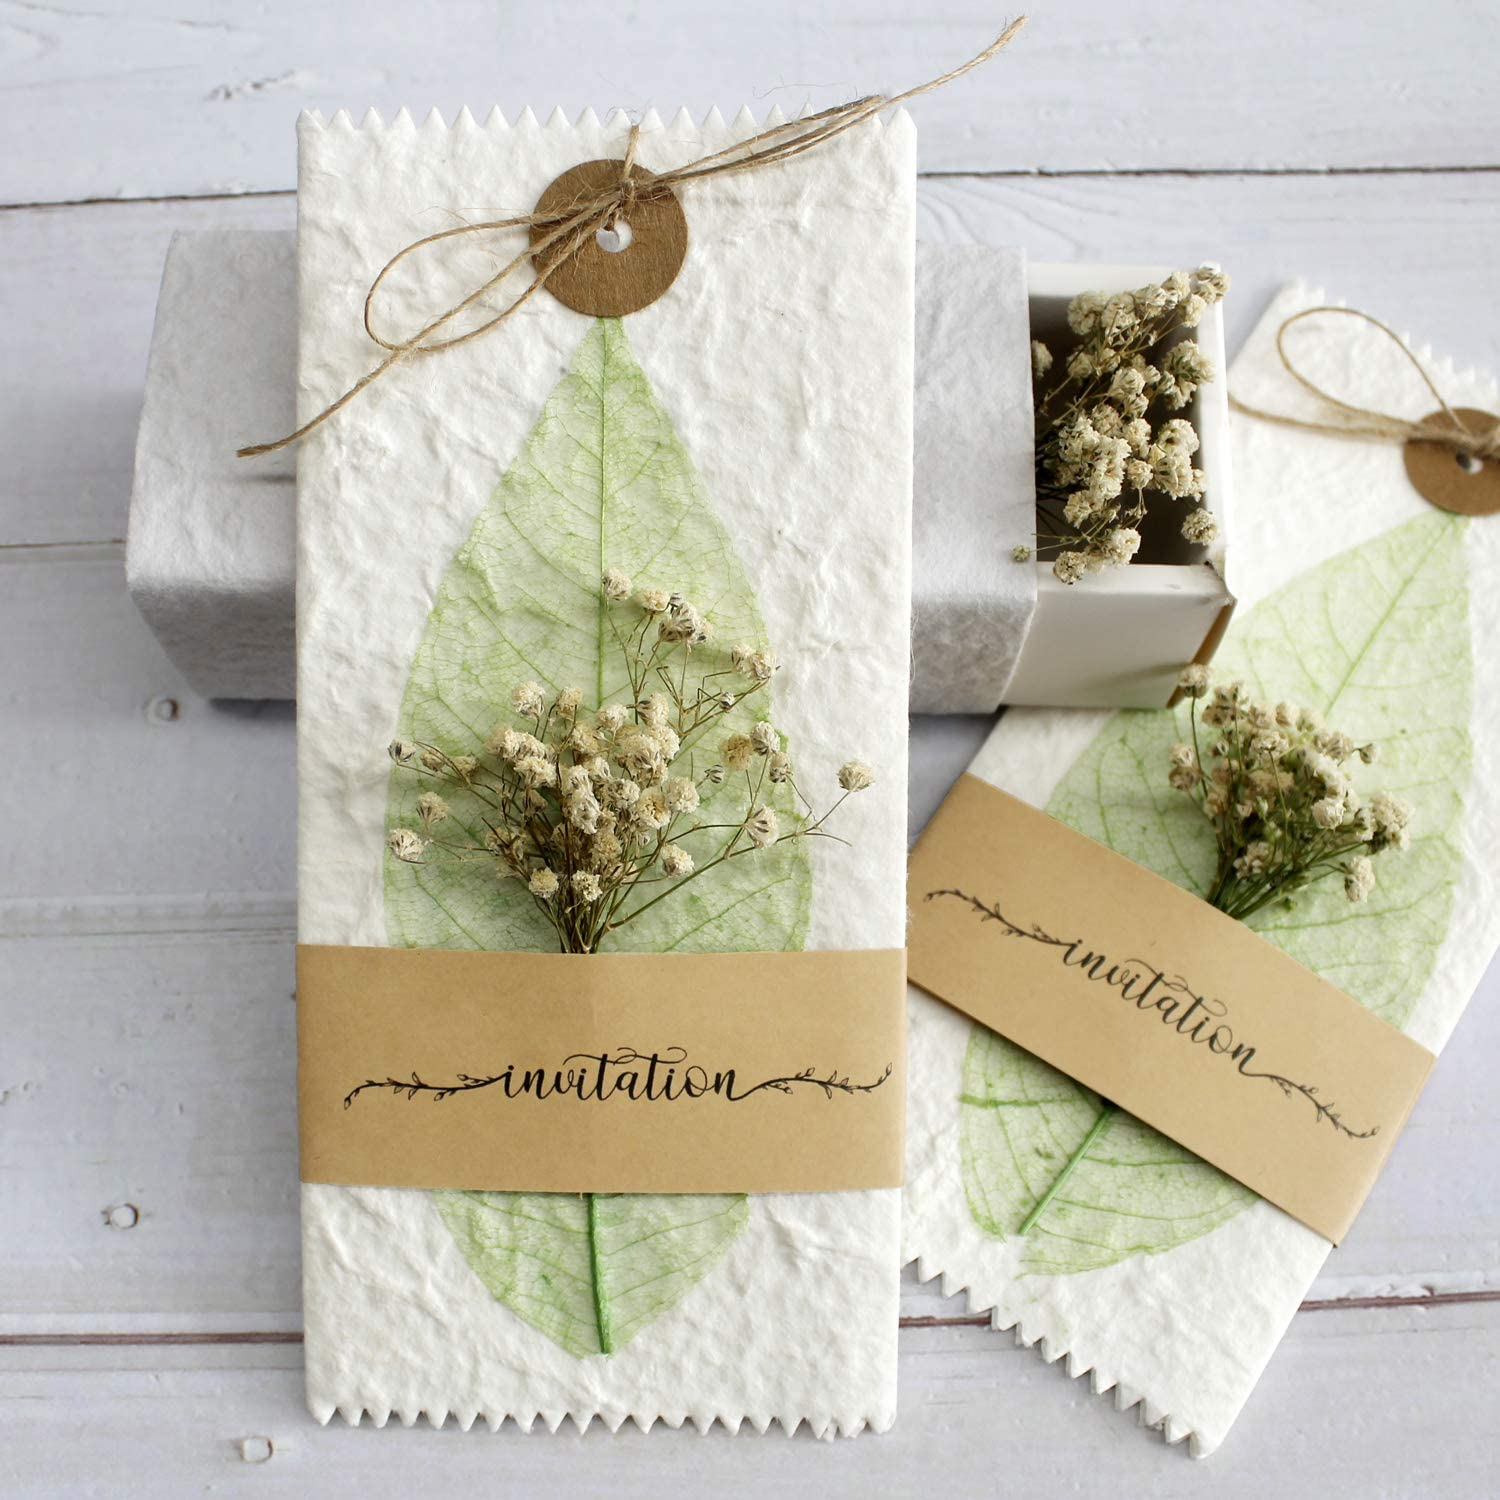 Picky Bride 10Pcs Handmade Real Dry Flower Vintage Wedding Invitations with  Real Leaf Vein, Unique Wedding Gifts Rustic Invite Cards for Your Stylish